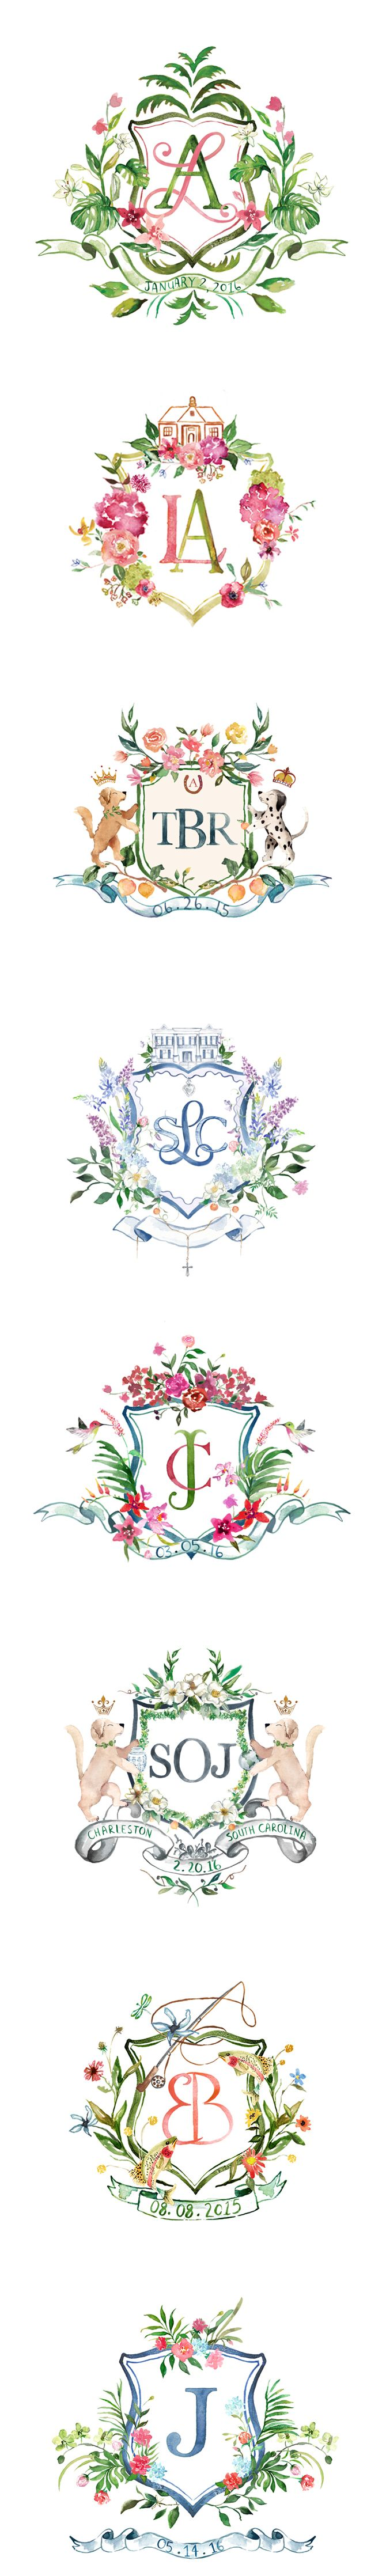 Arabella June: Watercolor Wedding Crests